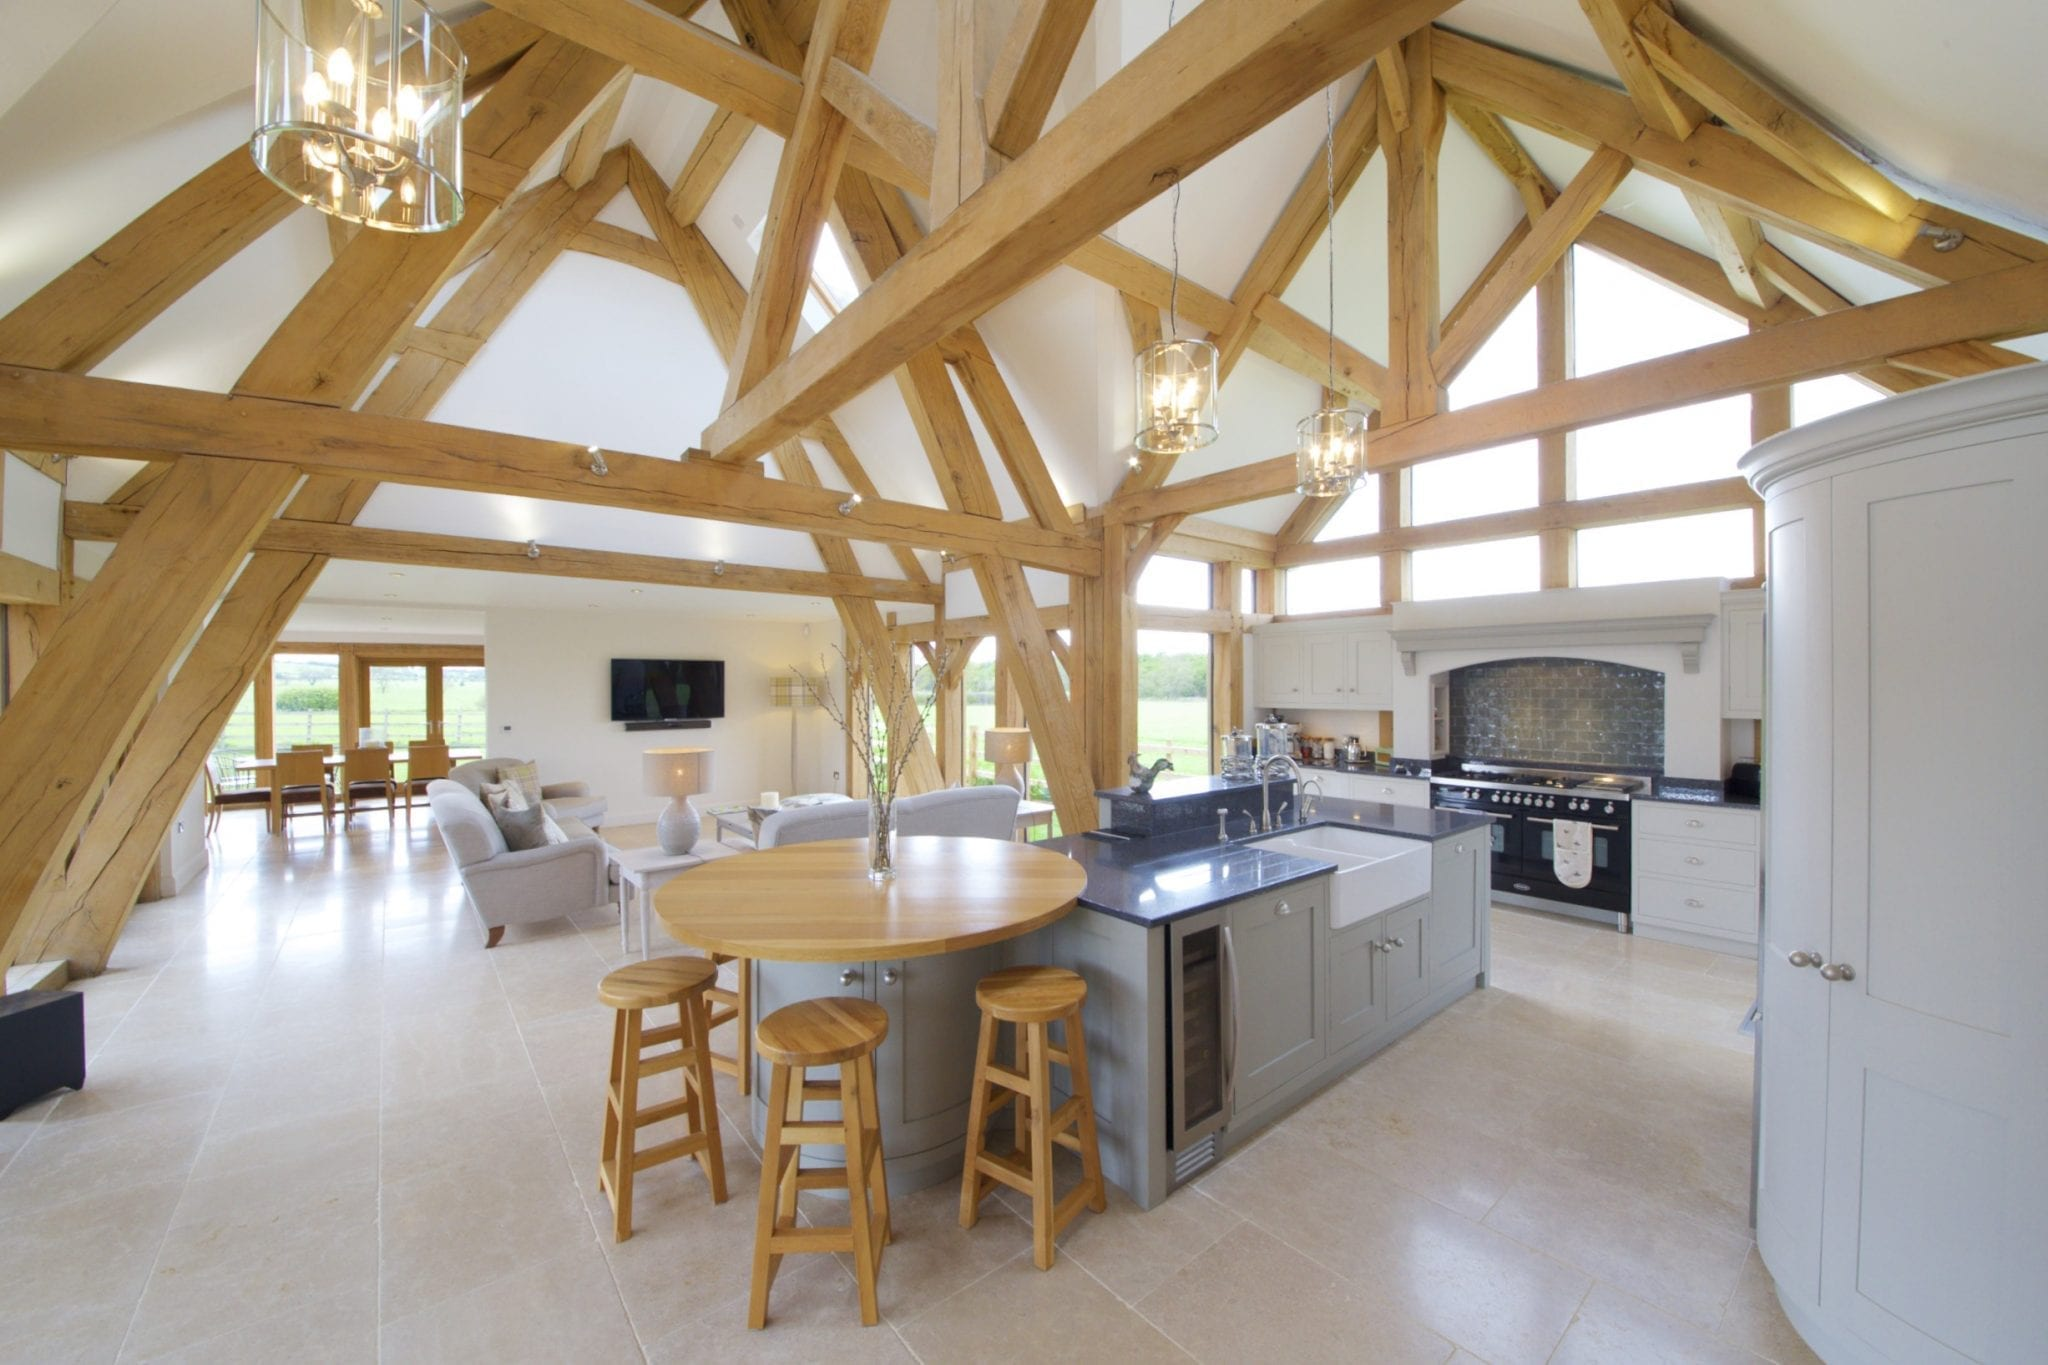 Oak framed kitchen dining and garden room extension to